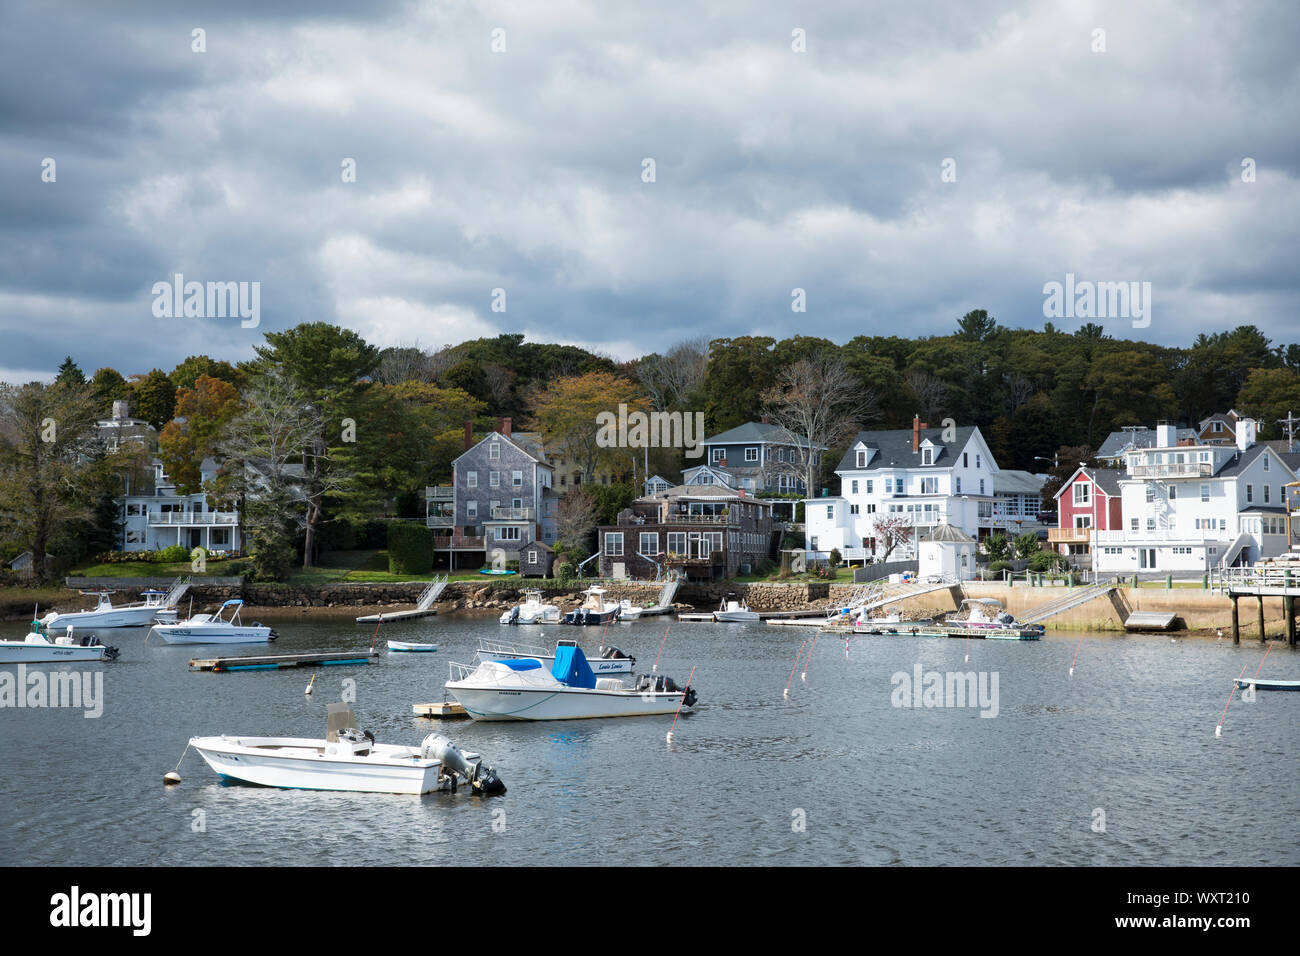 Boats moored in the harbour at Manchester-by-the-Sea. Massachusetts, USA Stock Photo